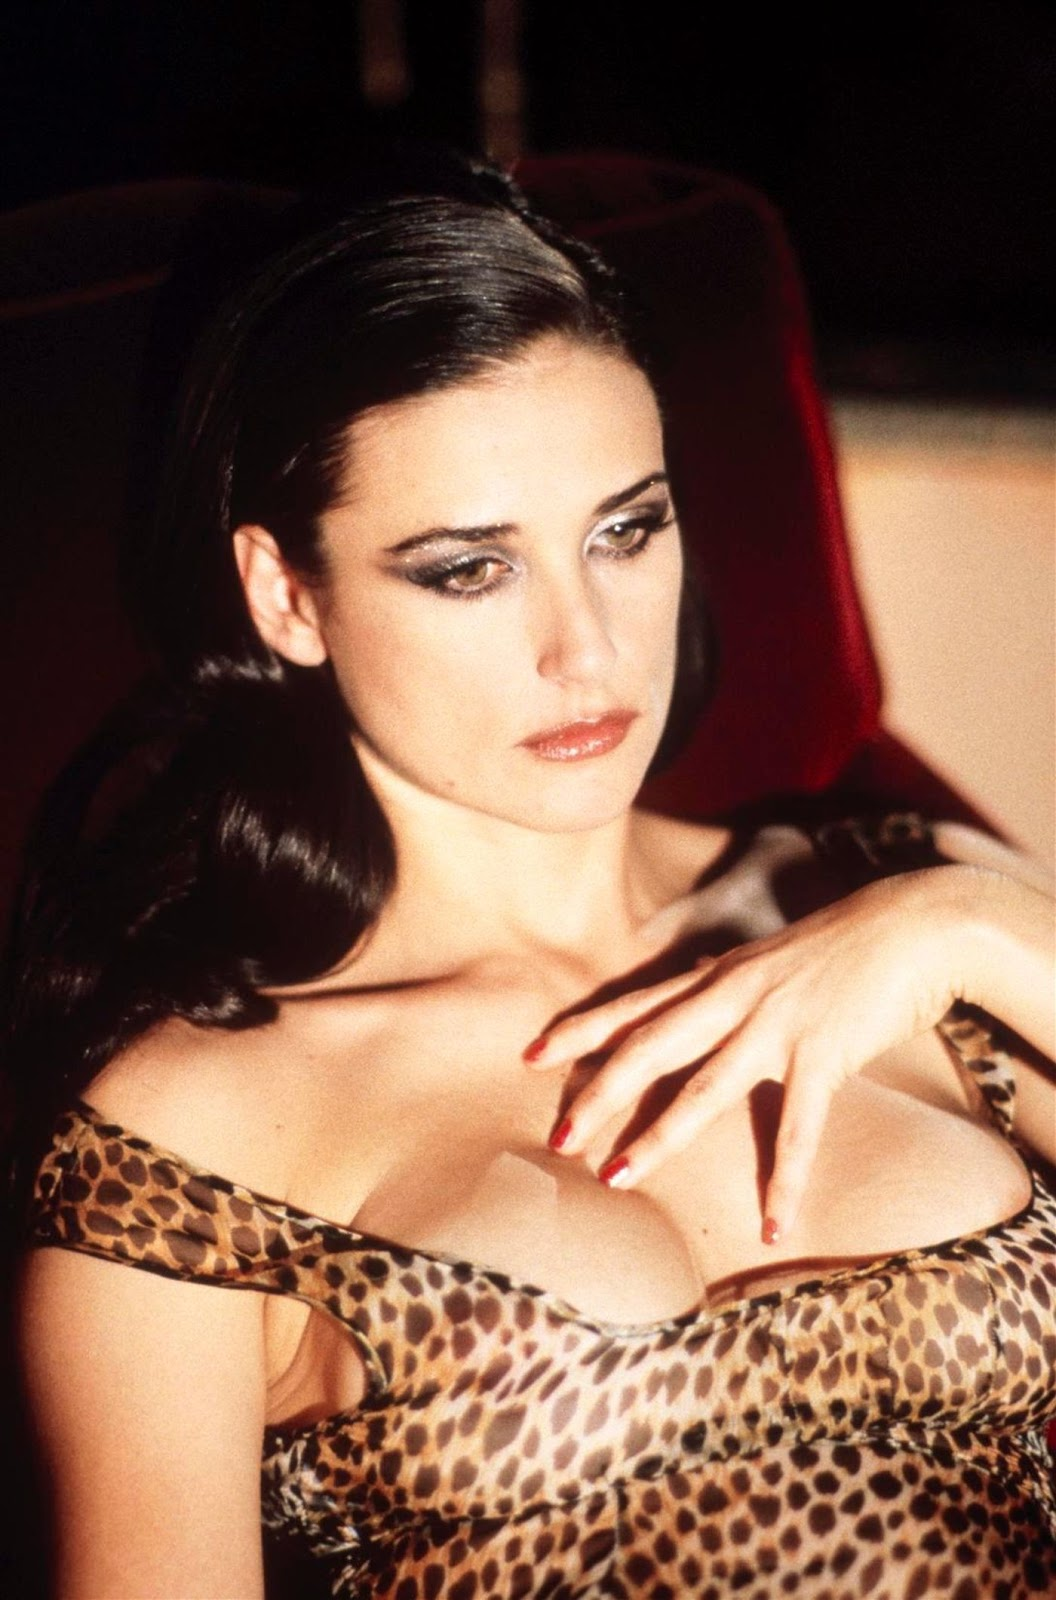 http://4.bp.blogspot.com/-zEDLK_2e7b4/TwR1oqBFm6I/AAAAAAAAA50/bSCN4vTuCos/s1600/Demi-Moore-hot-photo-shoot.jpg